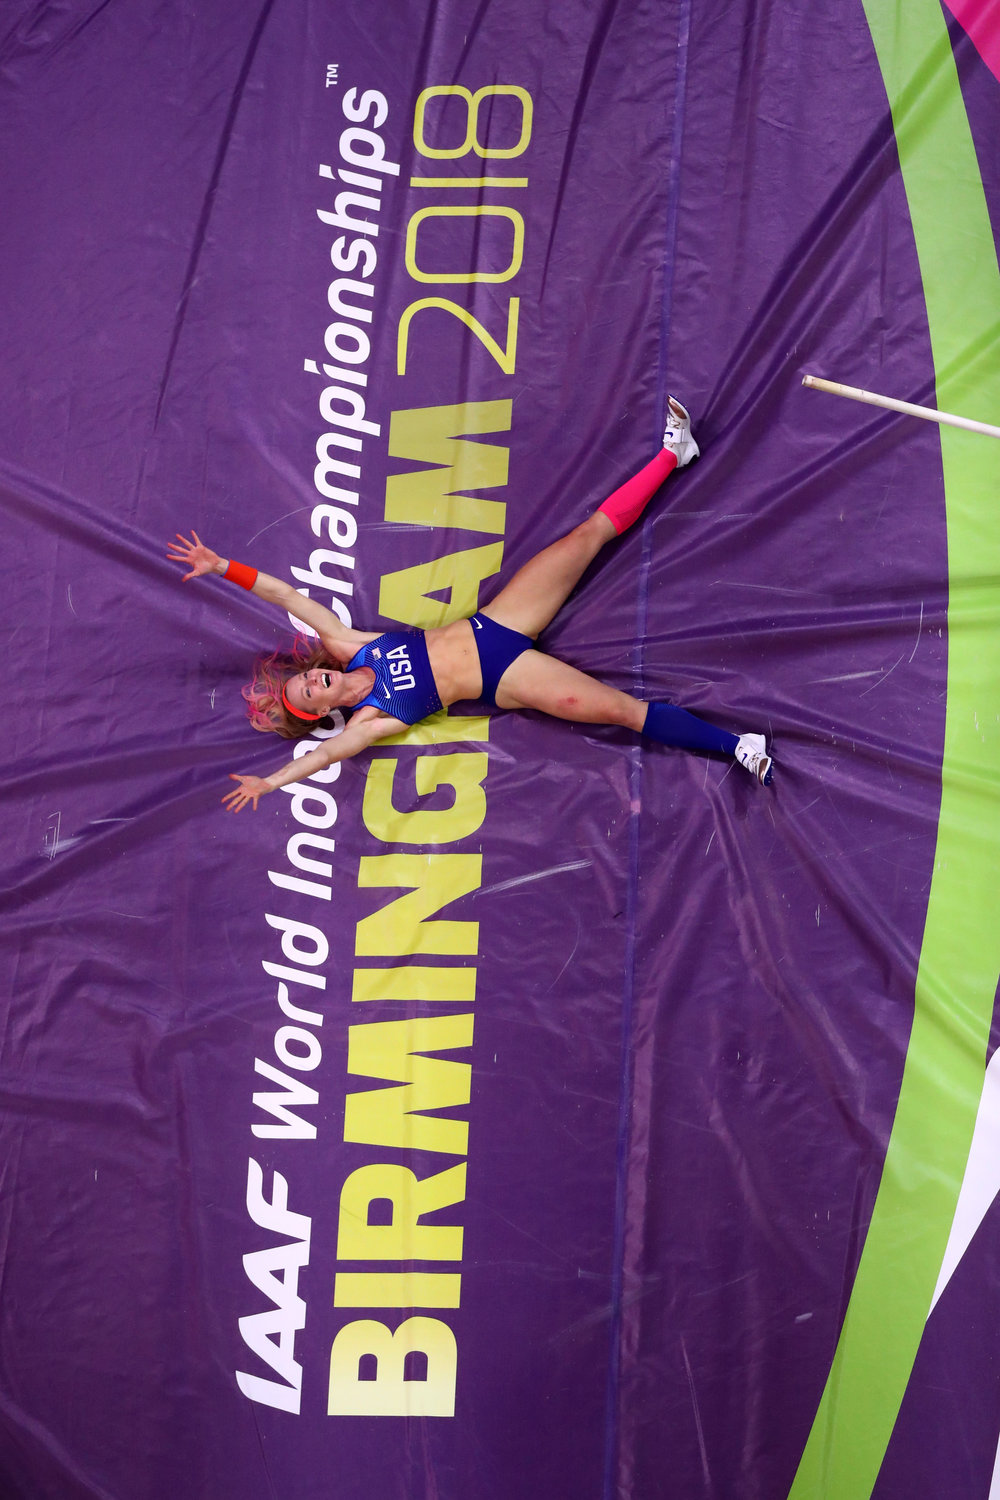 Sandi Morris celebrating a big clearance in the pole vault // Michael Steele/Getty Images for IAAF